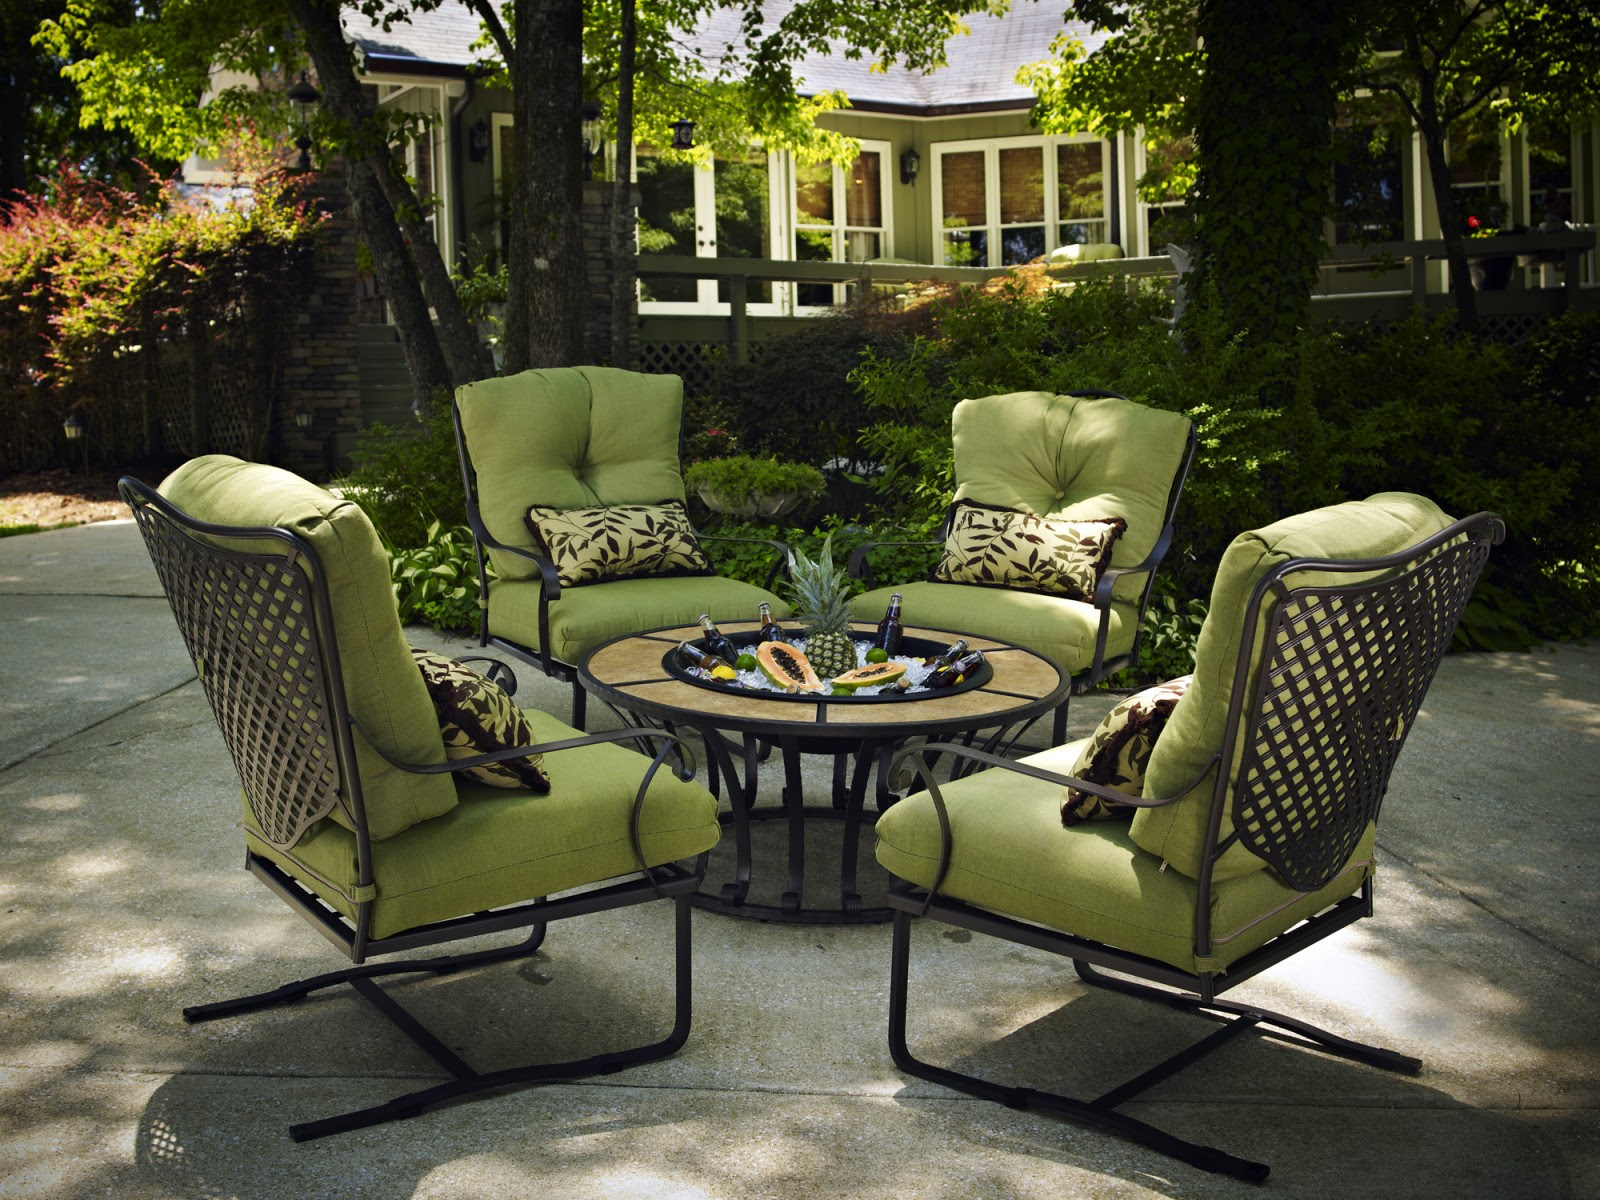 How to Protect Patio Furniture | How to Store Outdoor ...